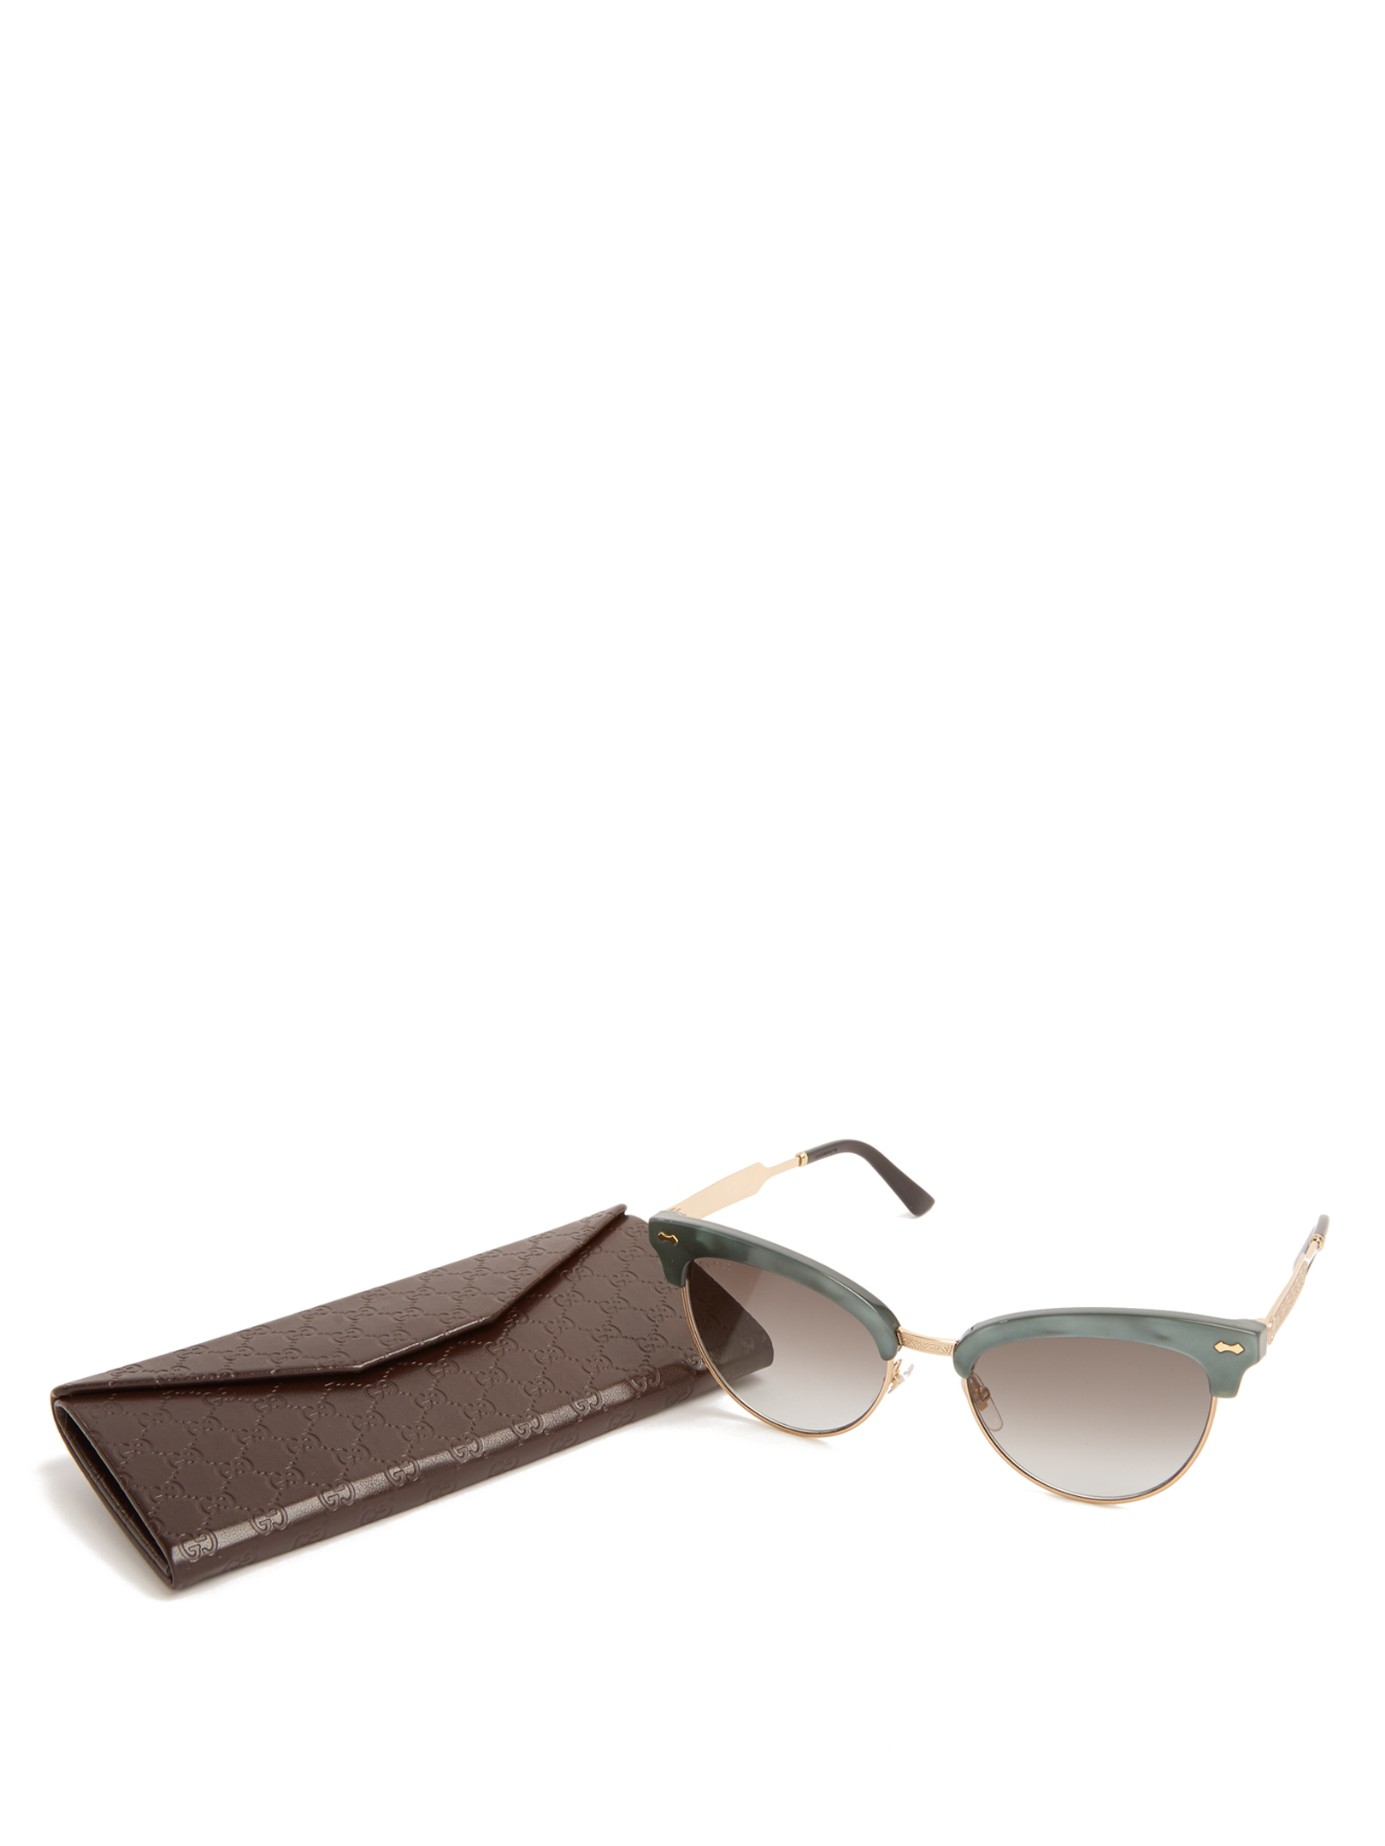 Gucci Glasses Half Frame : Gucci Cat-eye Half-frame Sunglasses in Gray Lyst